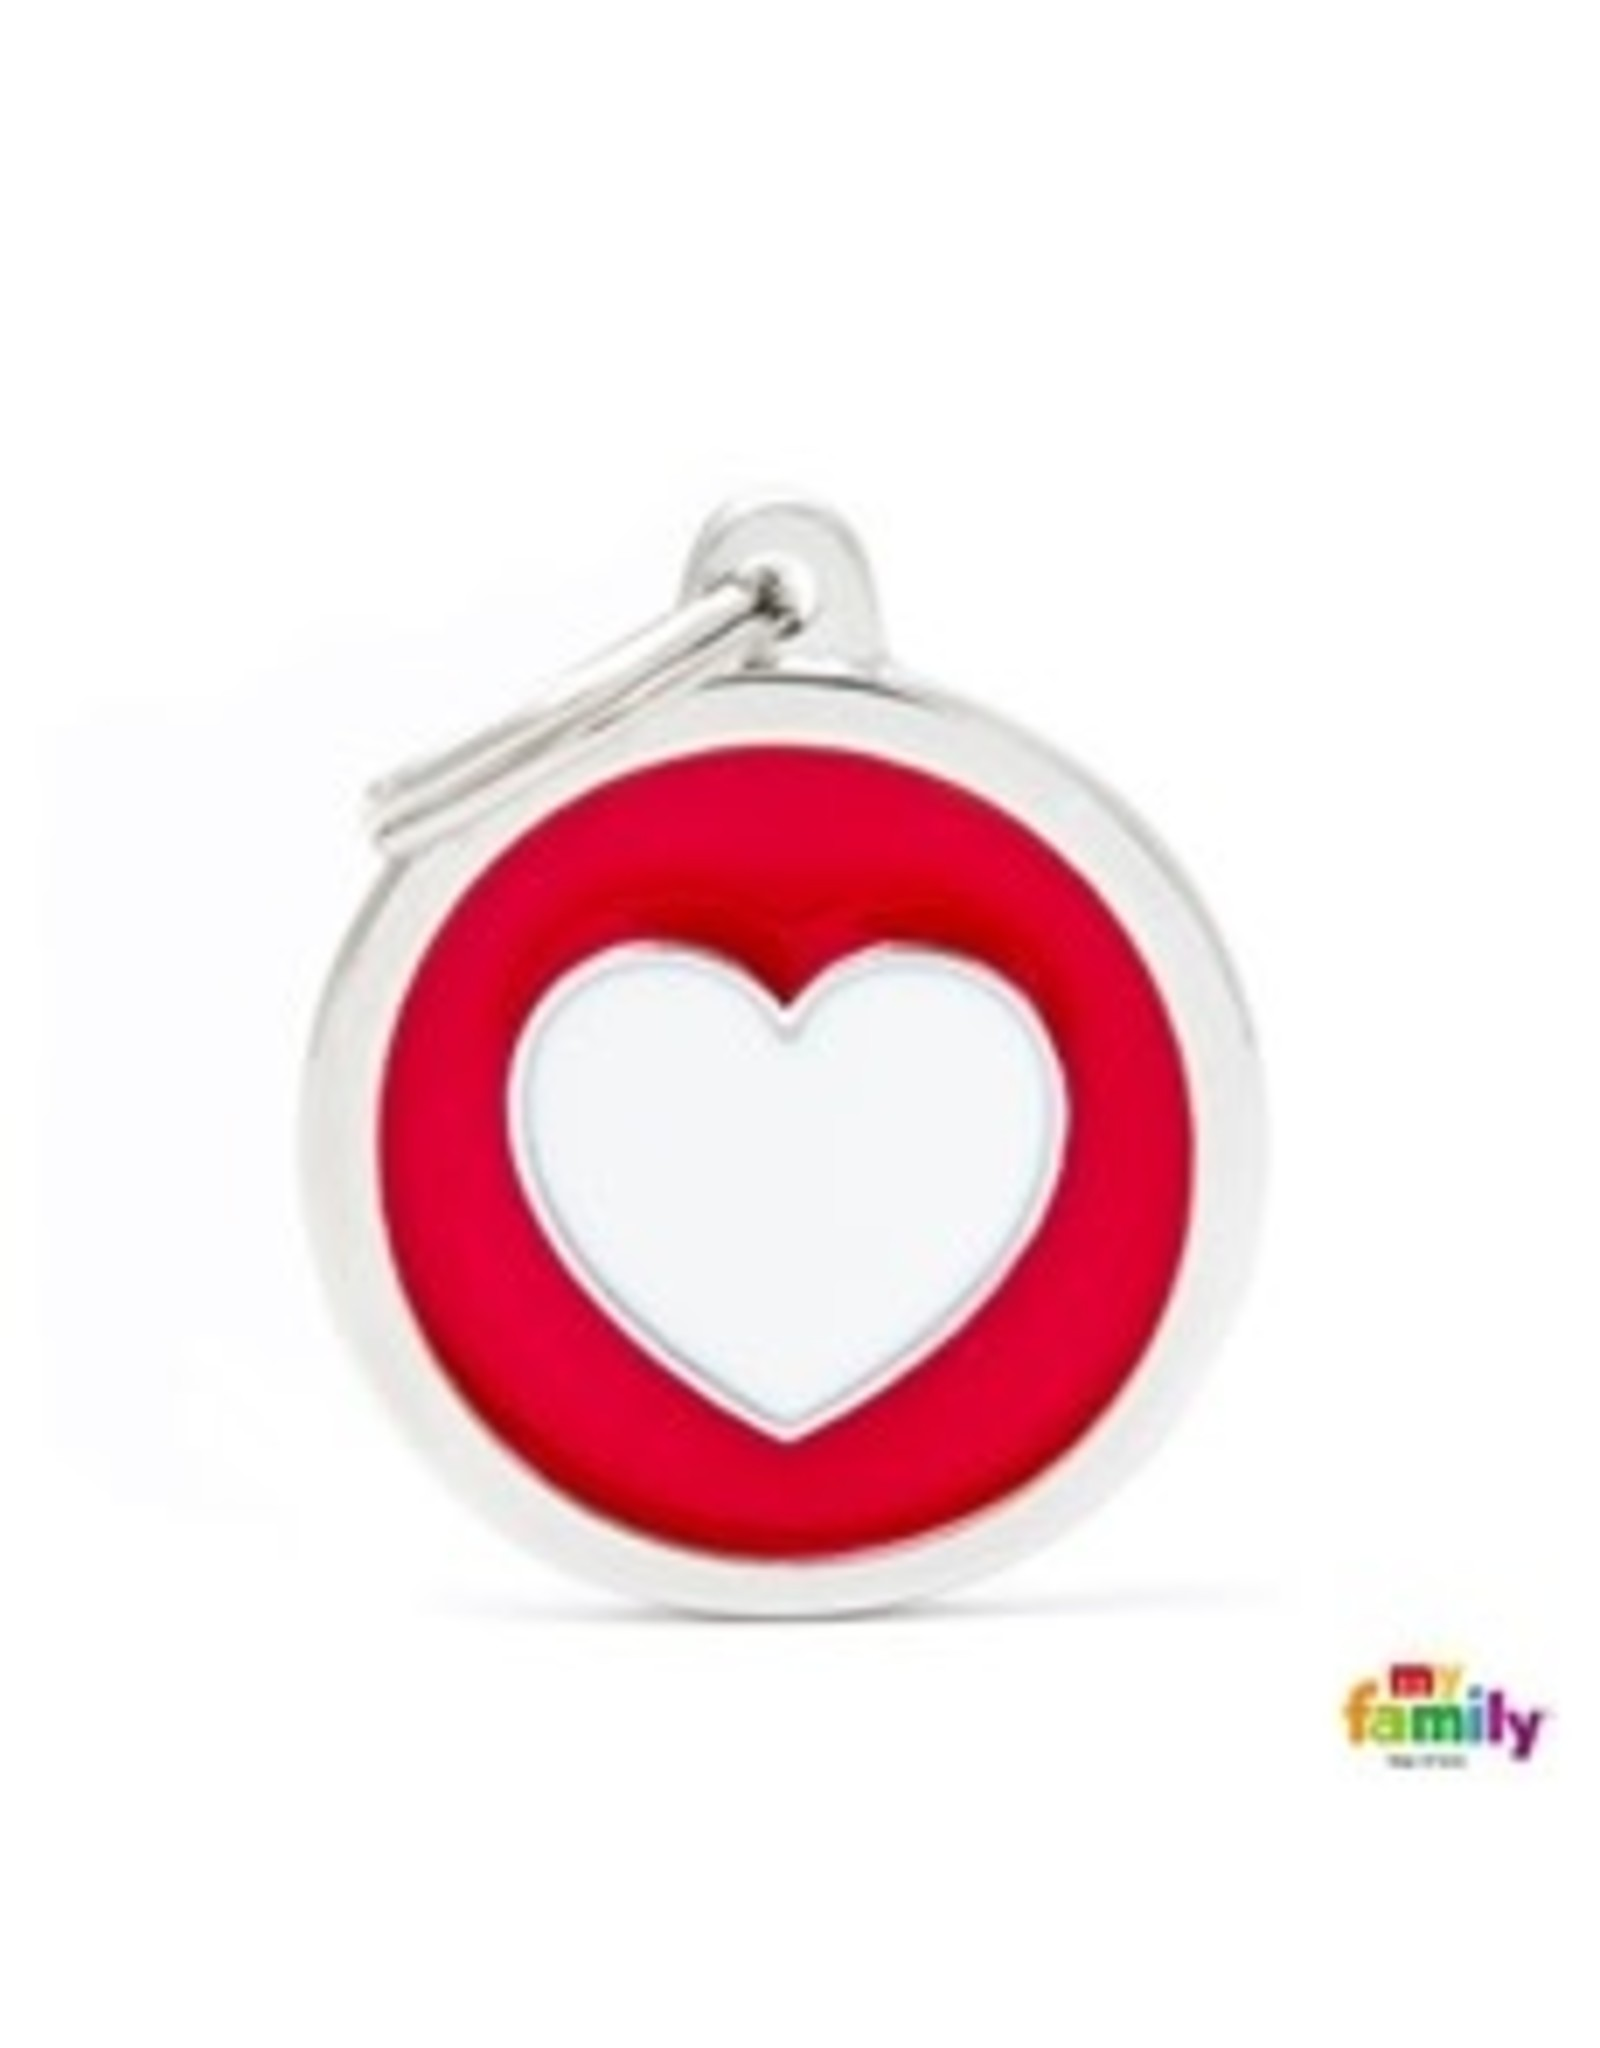 MyFamily Tag - Red Circle White Heart